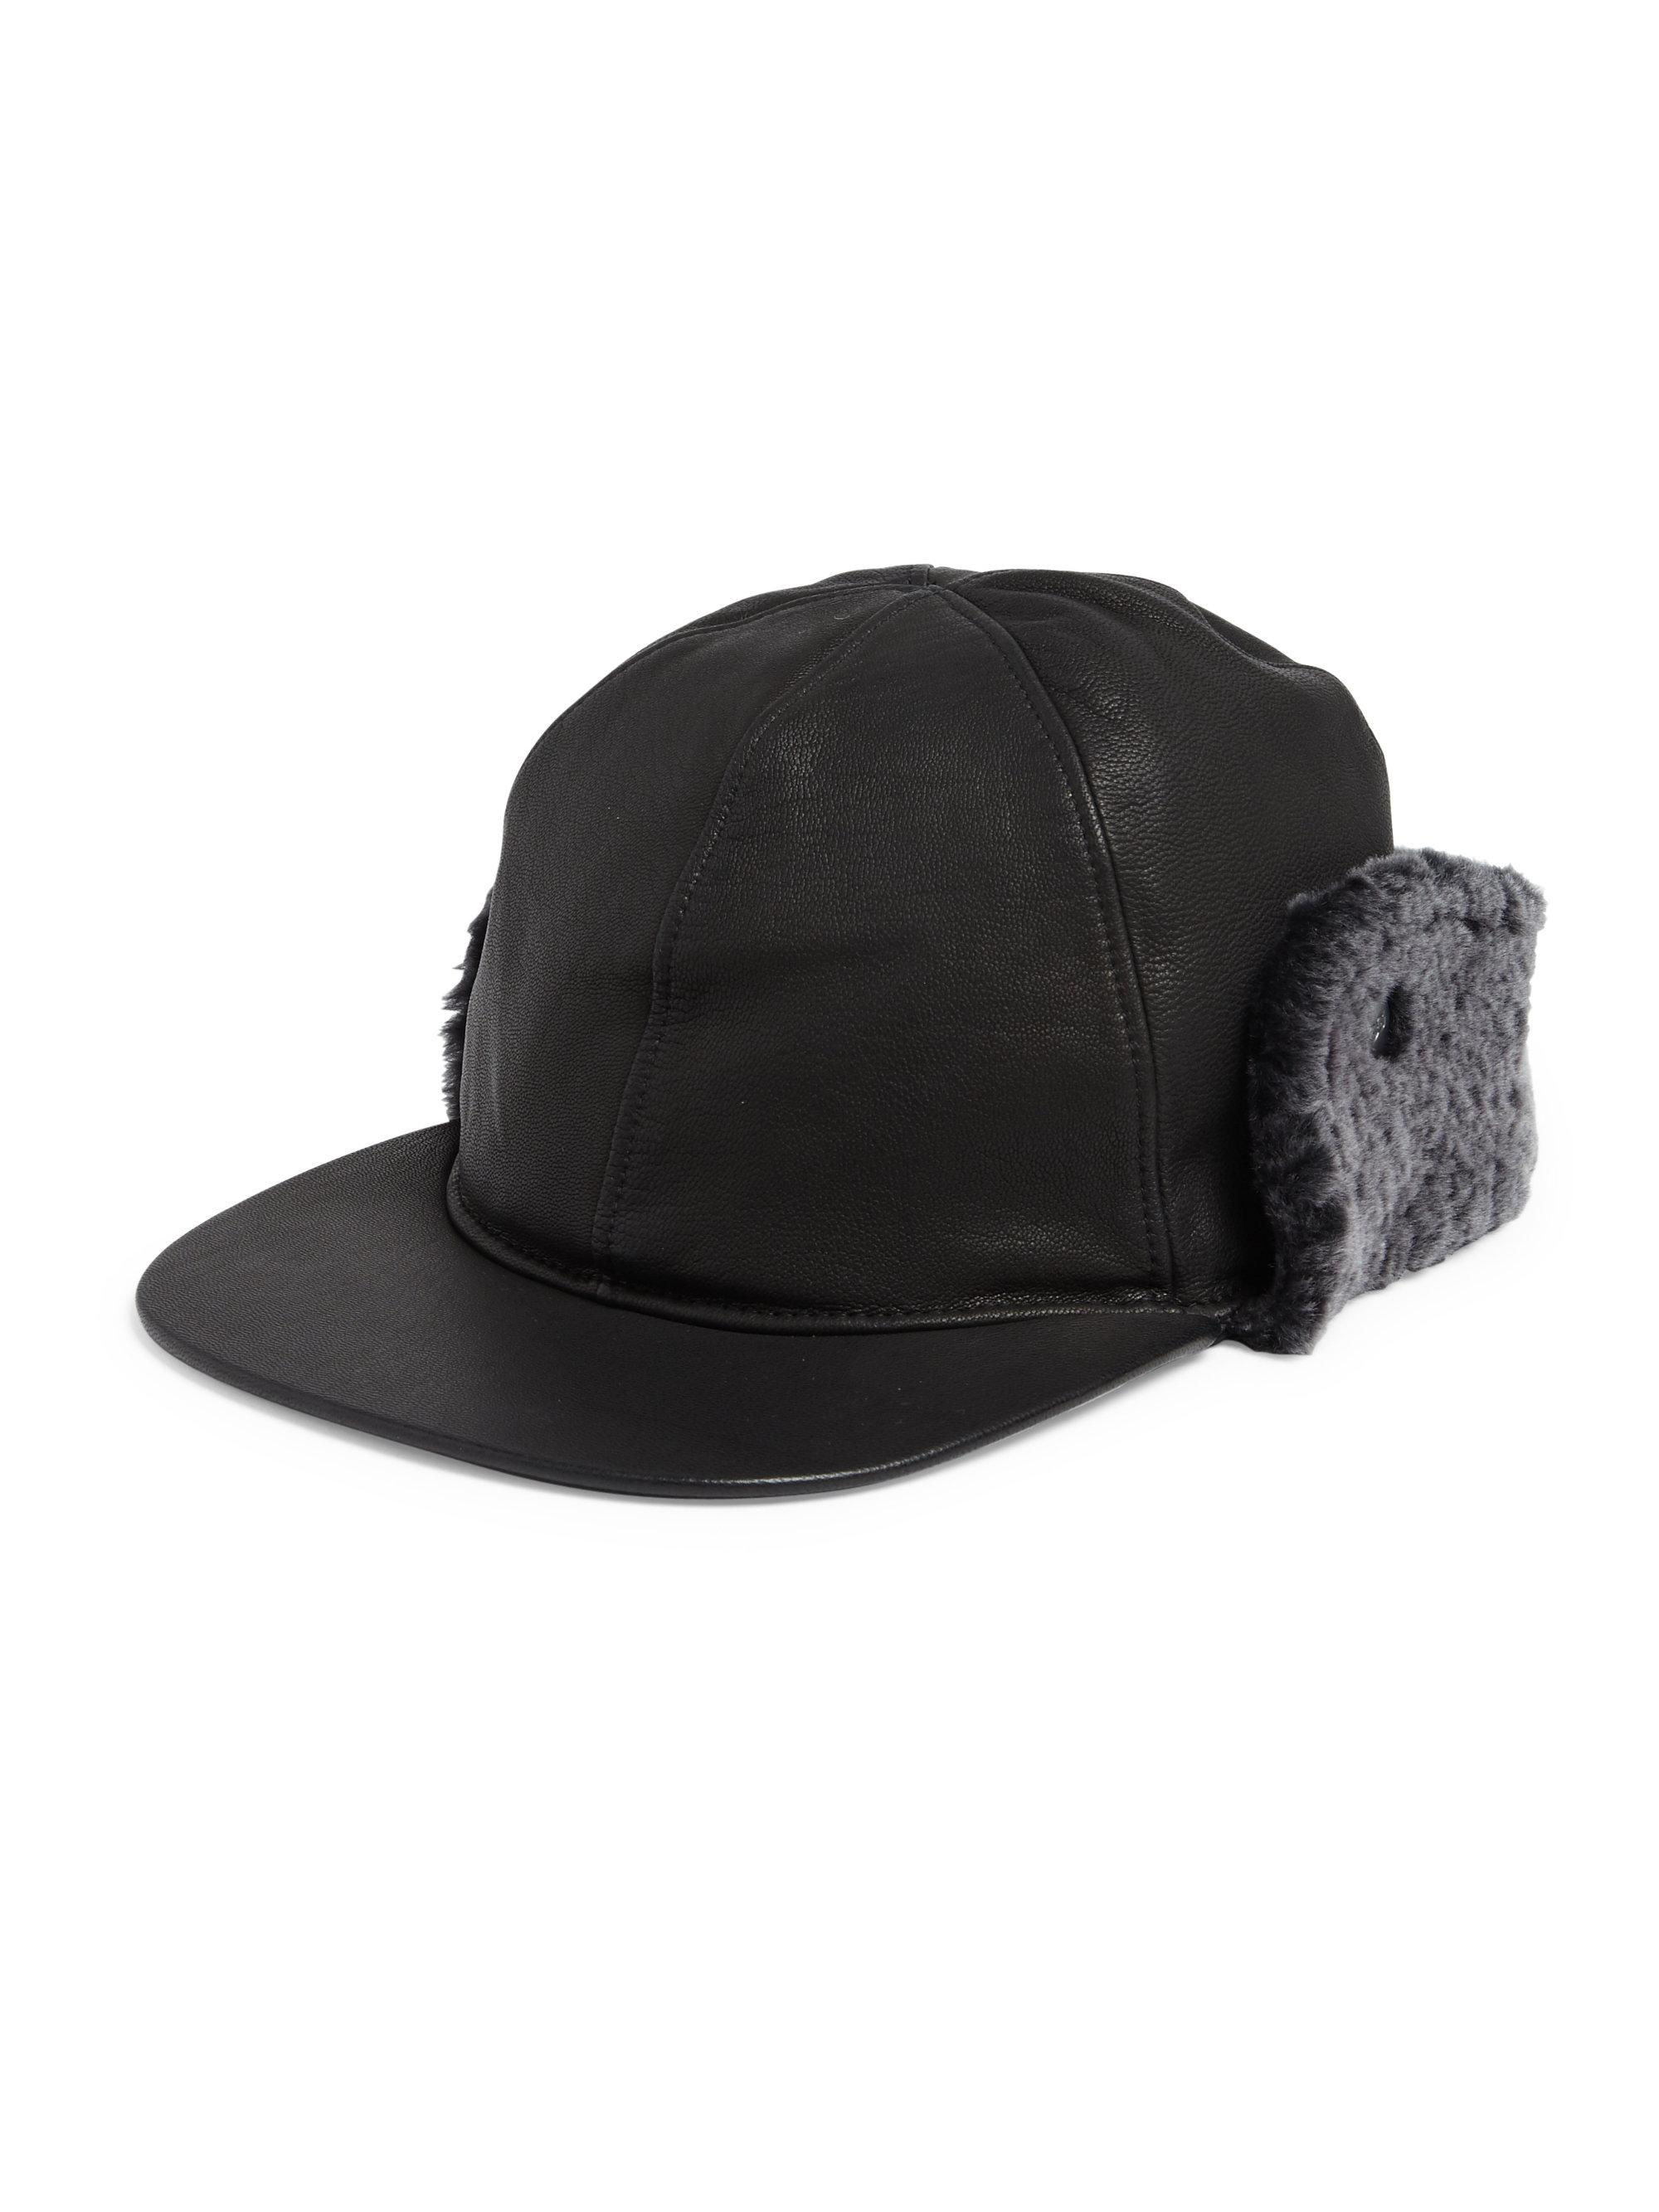 Ugg Sheepskin Shearling Fur Trimmed Leather Baseball Hat